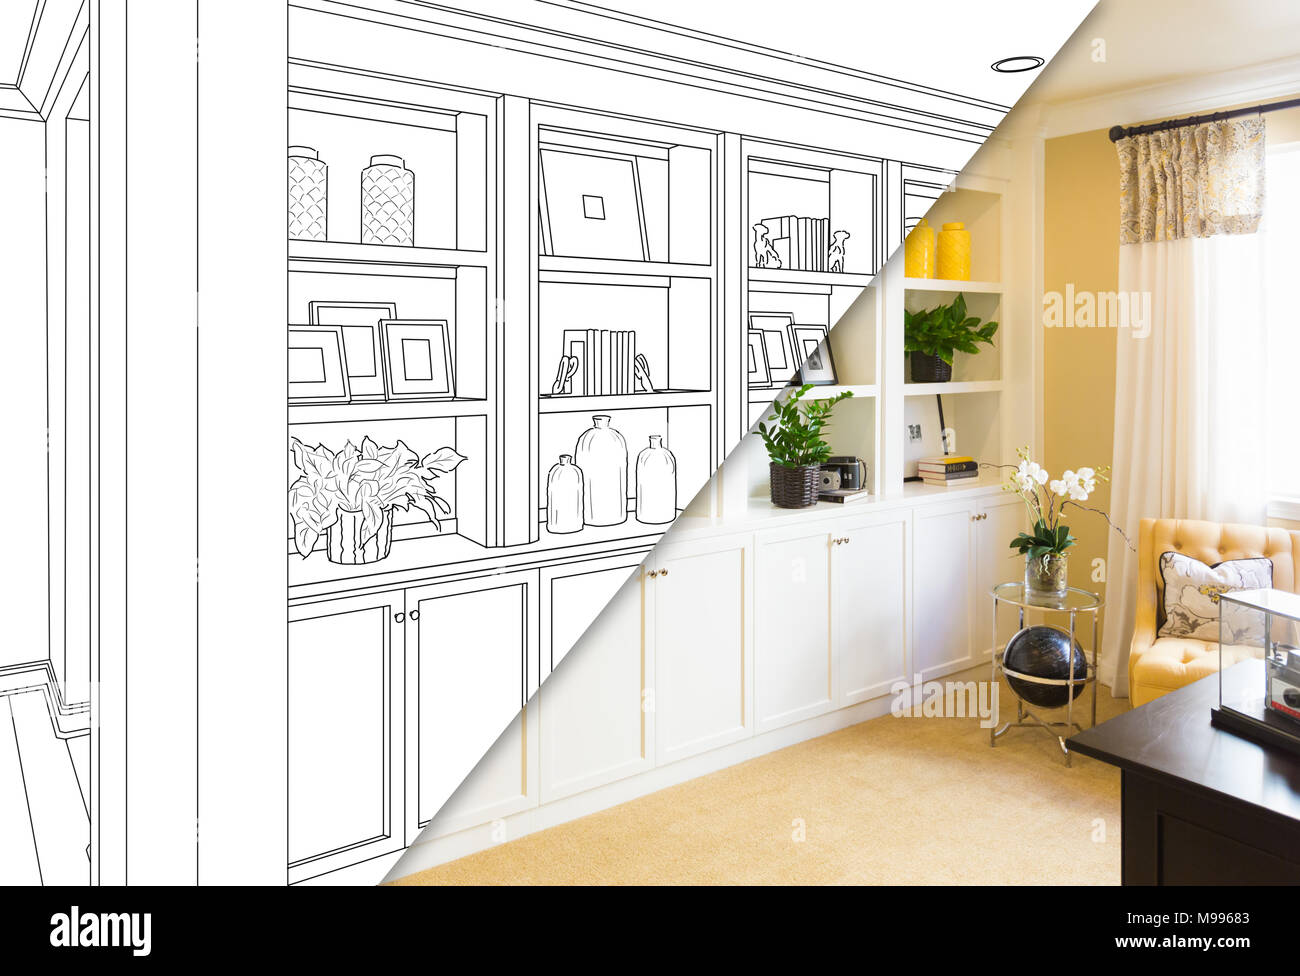 Custom Built In Shelves And Cabinets Design Drawing With